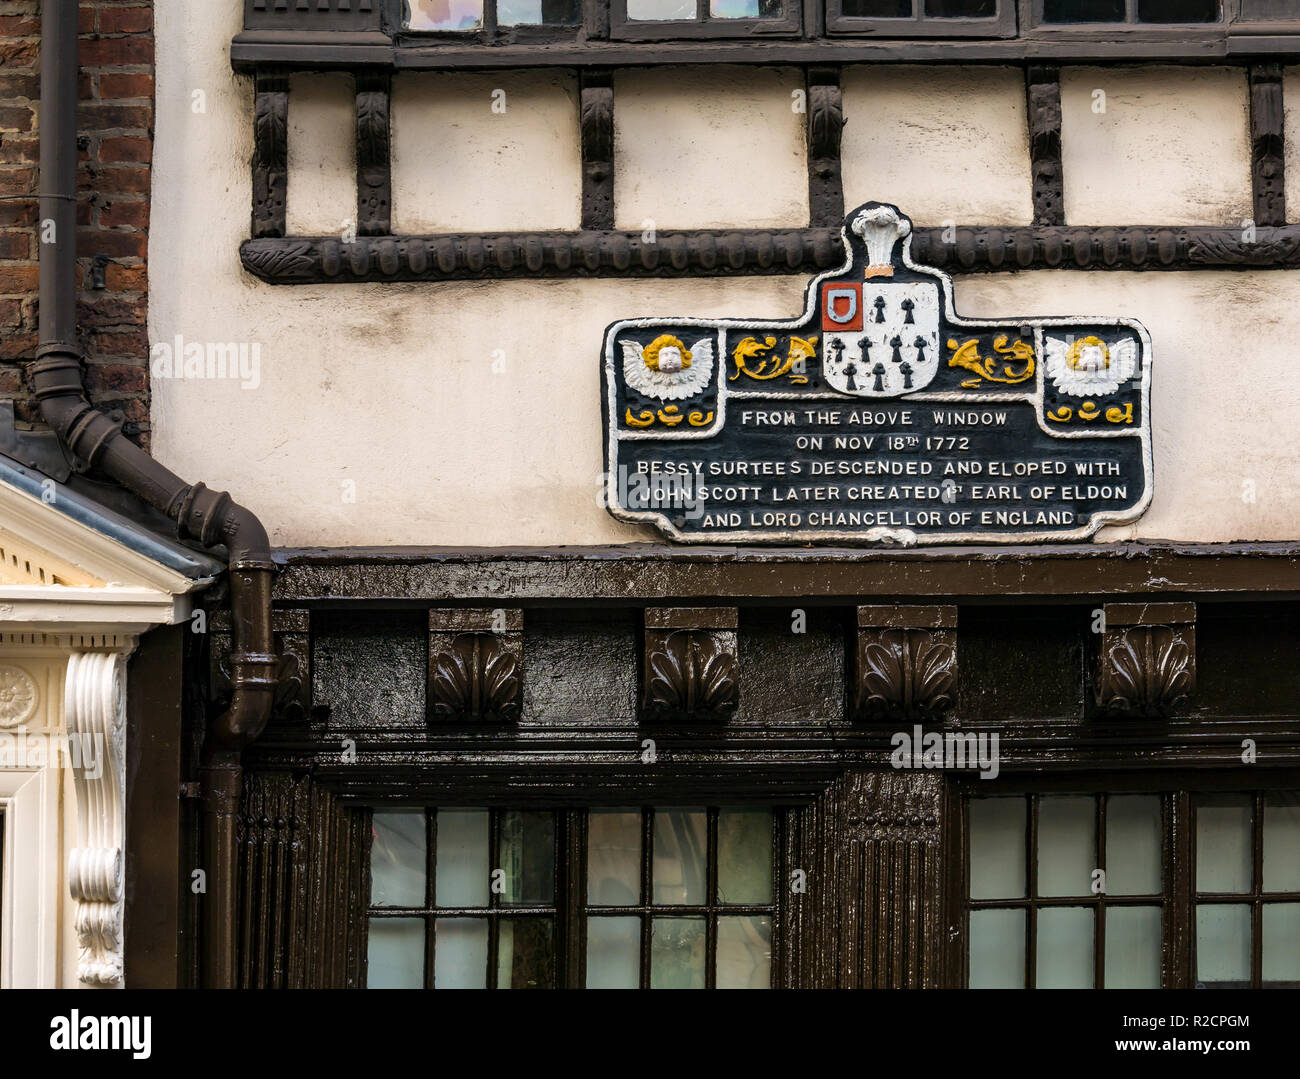 Wooden sign about Bessy Surtees elopement with John Scott, historic building, Newcastle Upon Tyne, England, UK - Stock Image